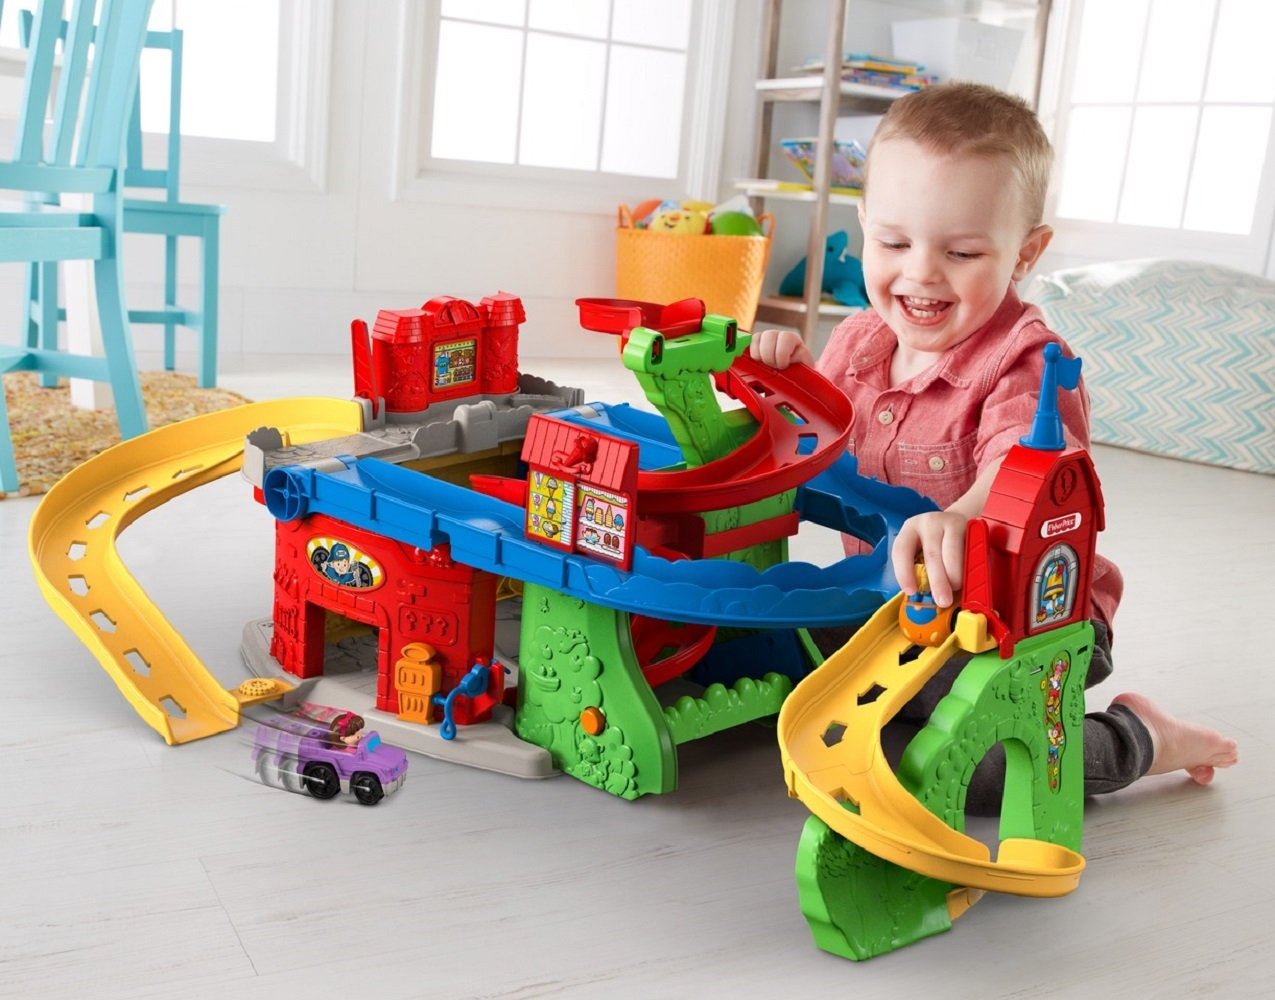 Cool Toys For Boys : Best gifts and toys for year old boys favorite top